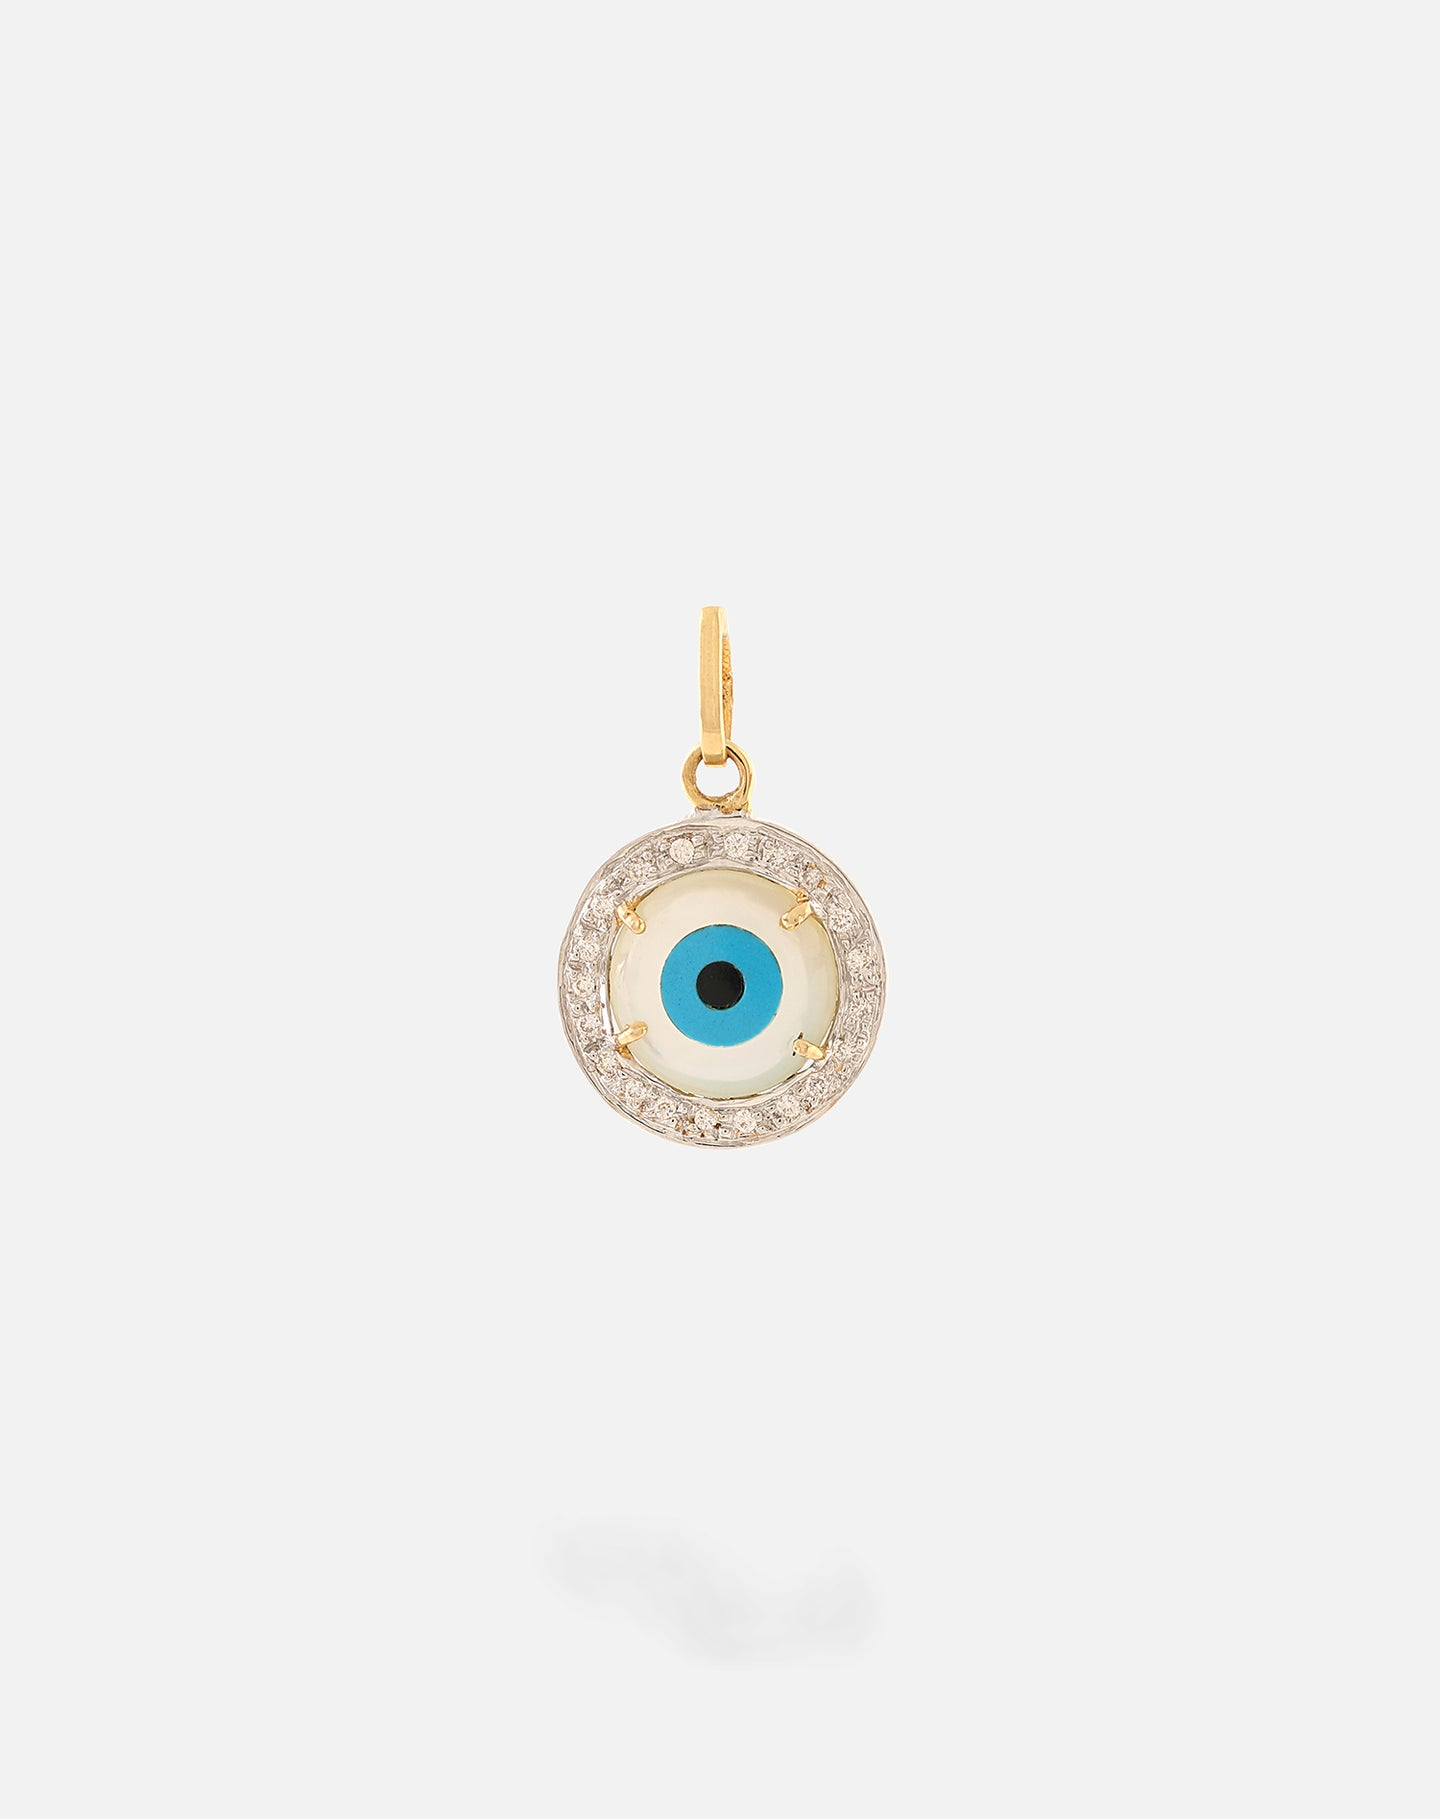 Gold Evil Eye Charm - Round with Diamonds